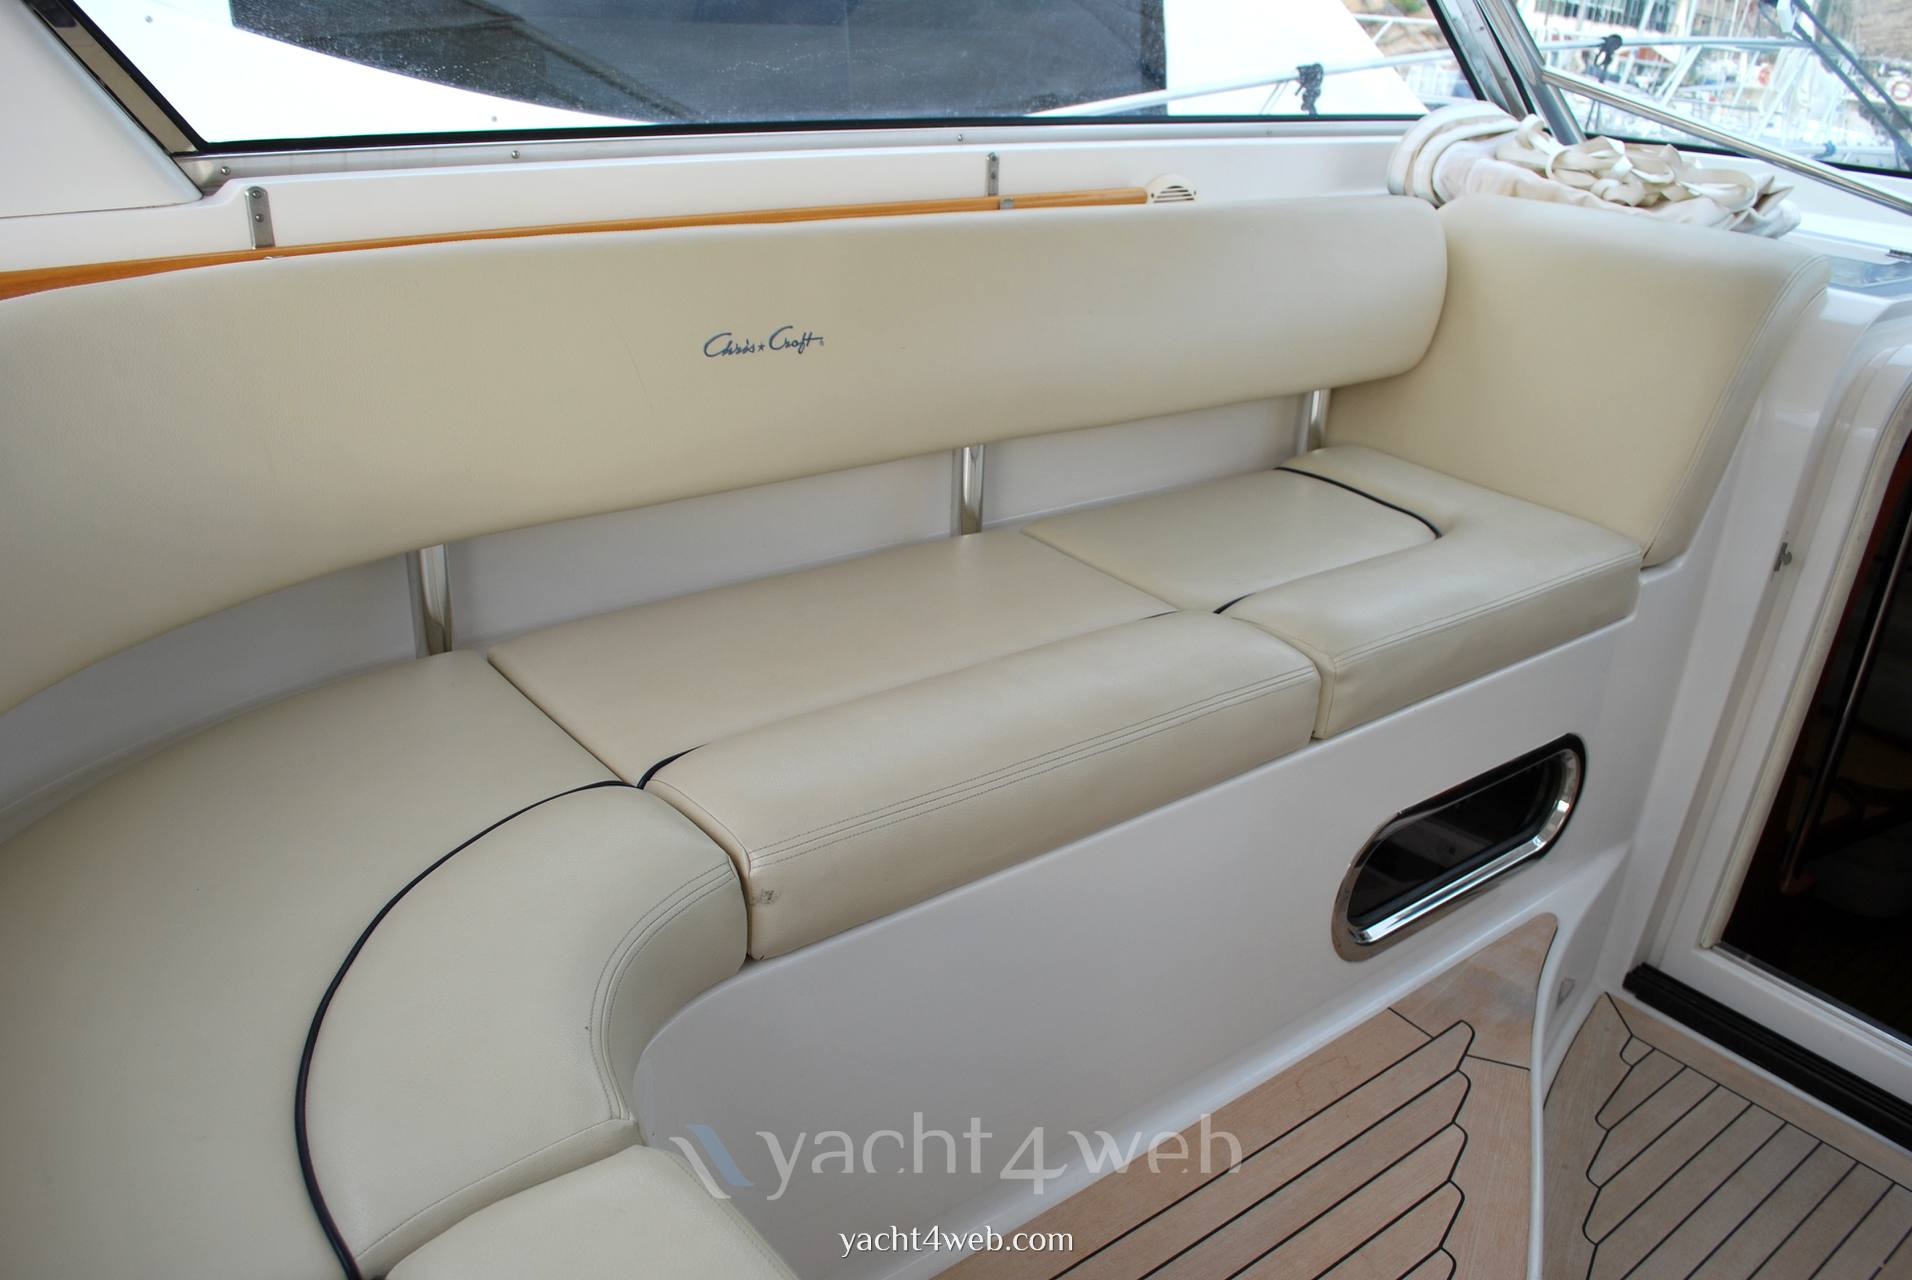 CHRIS CRAFT Roamer 40 Express cruiser used